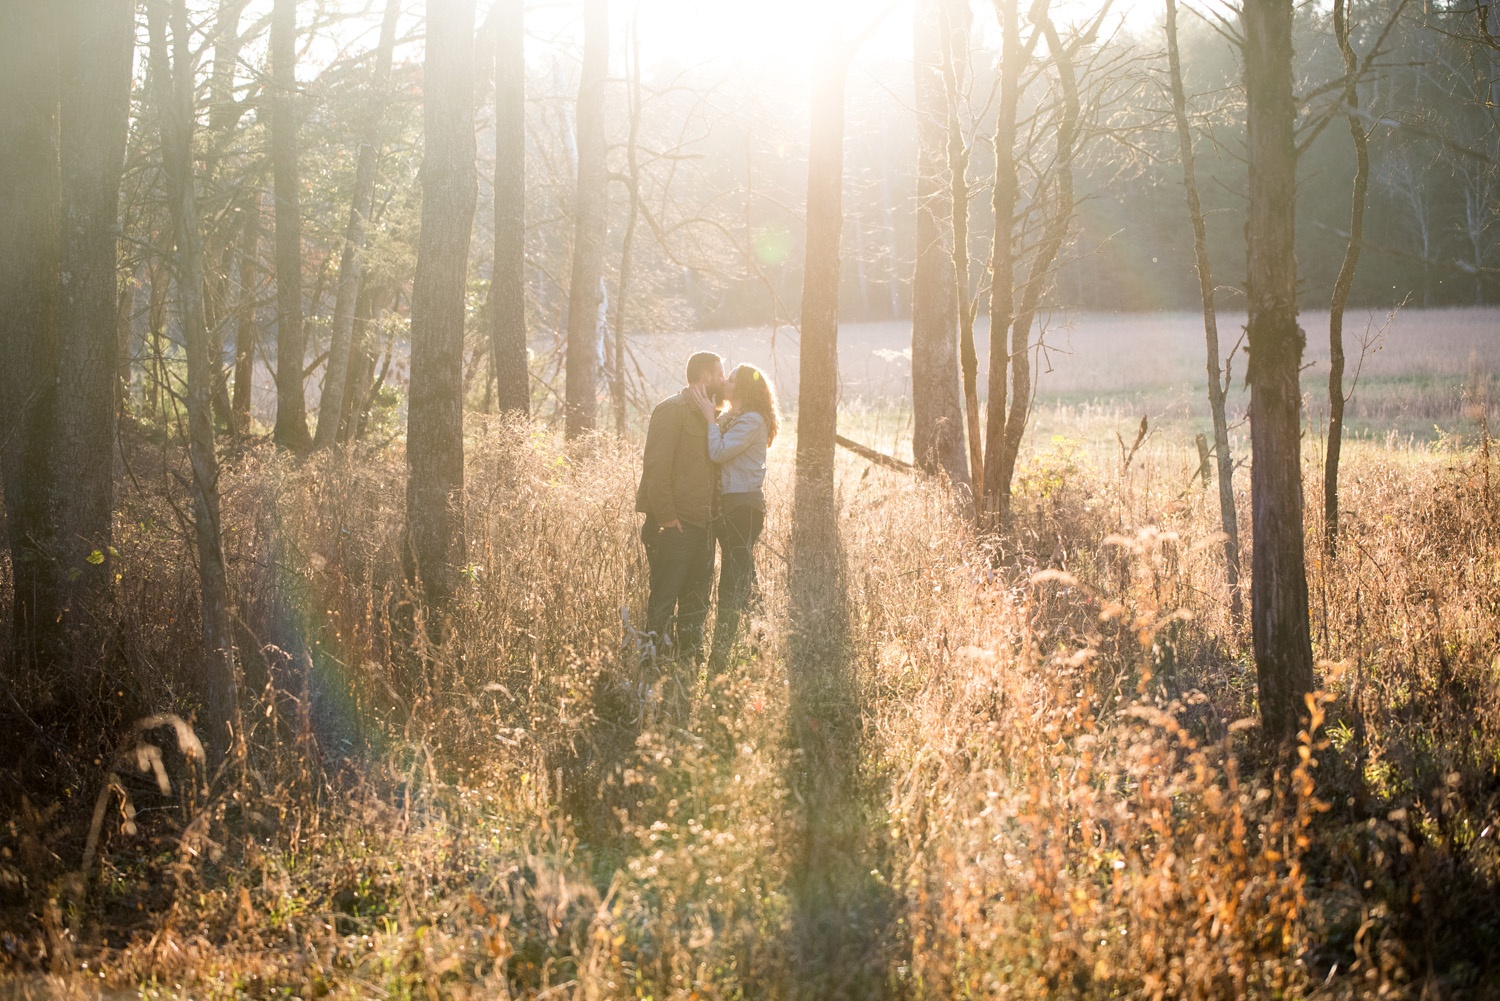 Engaged couple at the edge of forest in the golden hour.